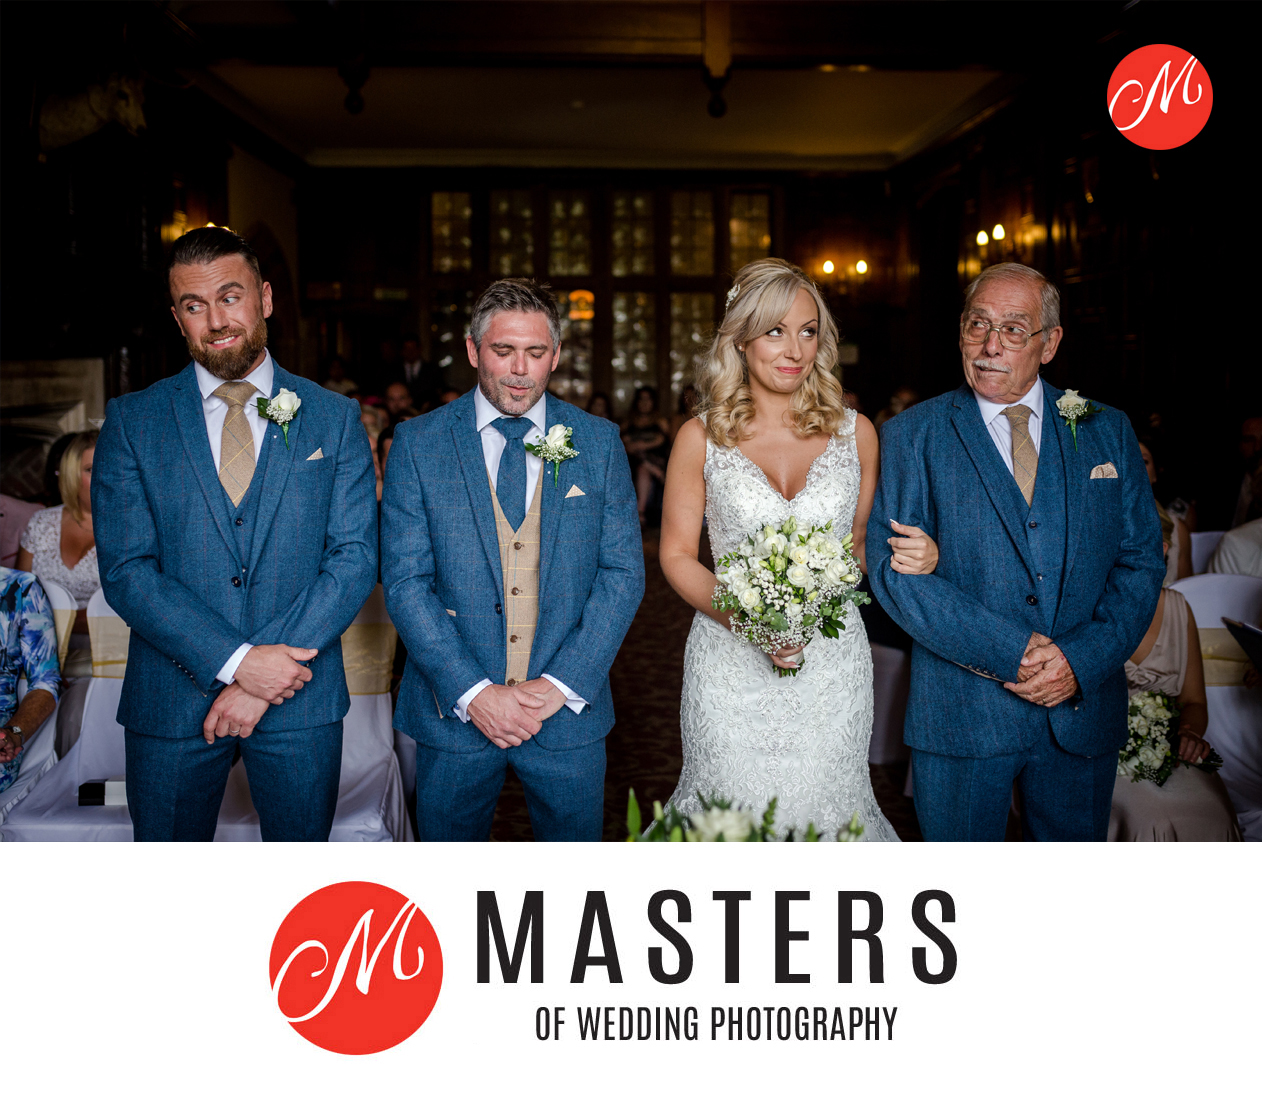 Masters of Wedding Photography